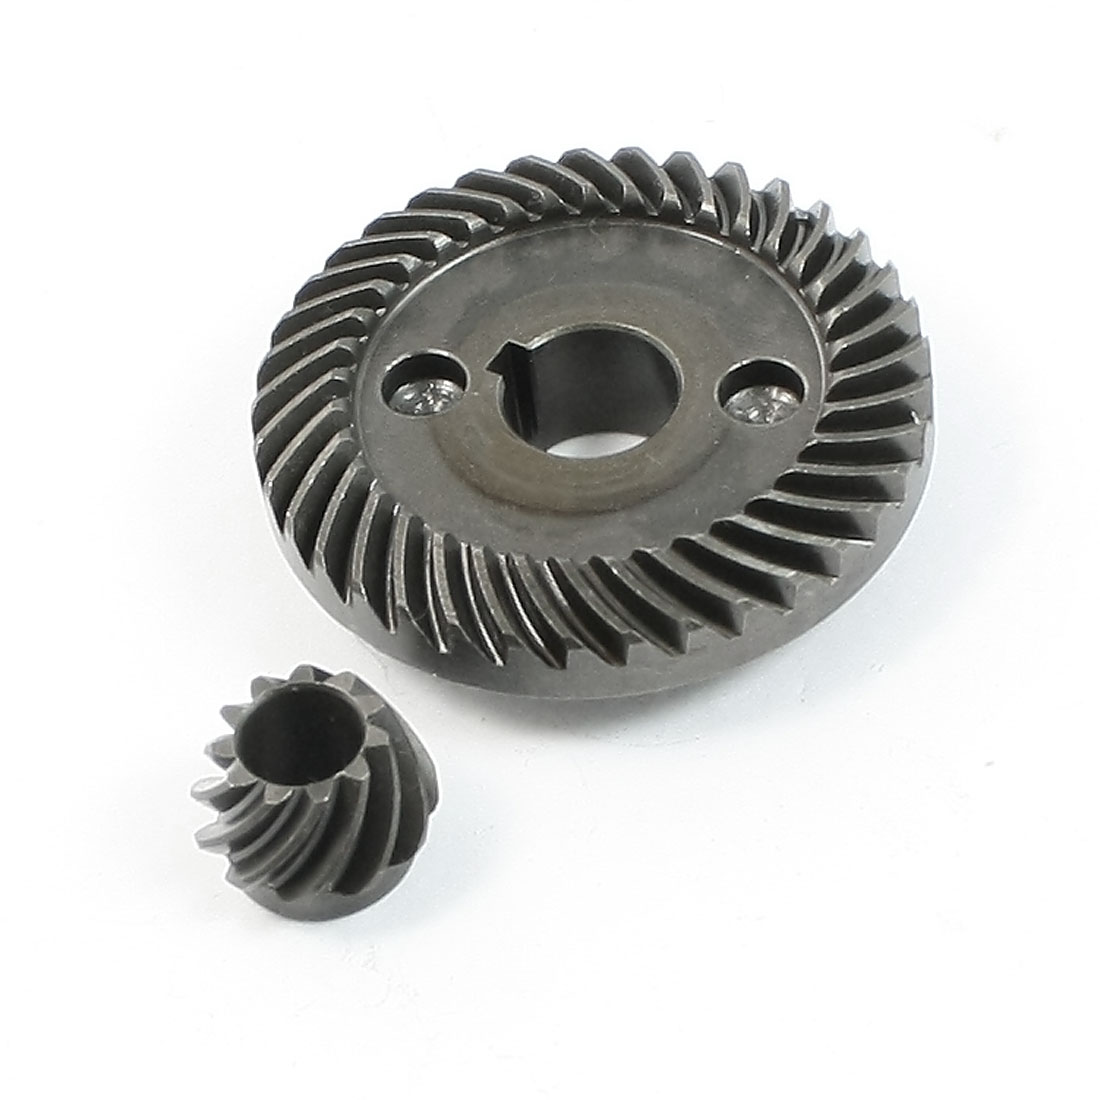 Unique Bargains Repair Part Spiral Bevel Gear Pinion Set for LG 100 Angle Grinder